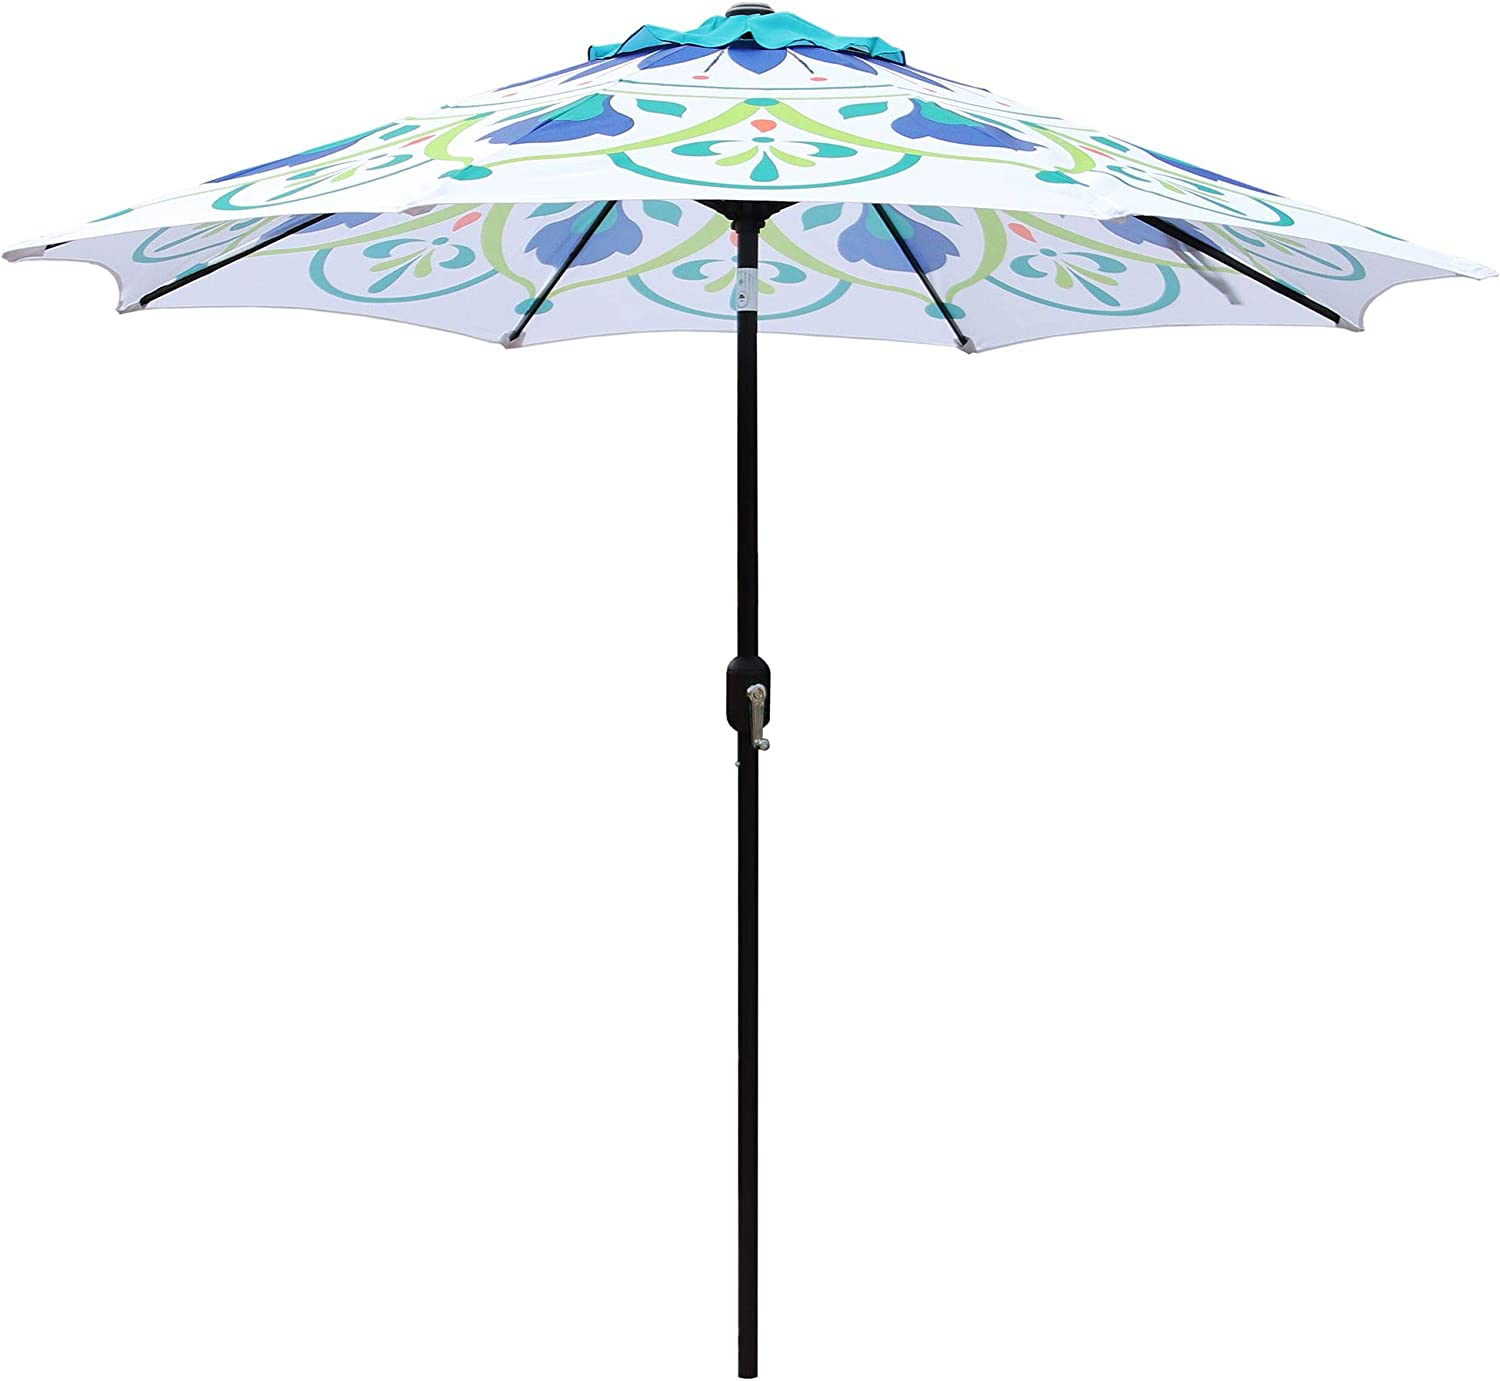 ABBLE Outdoor Patio Umbrella 9Ft Crank Tilt Printed Umbrella Market Umbrella Picnic Table Umbrella Pool Umbrella for Garden, Deck, Backyard and Beach- Printed